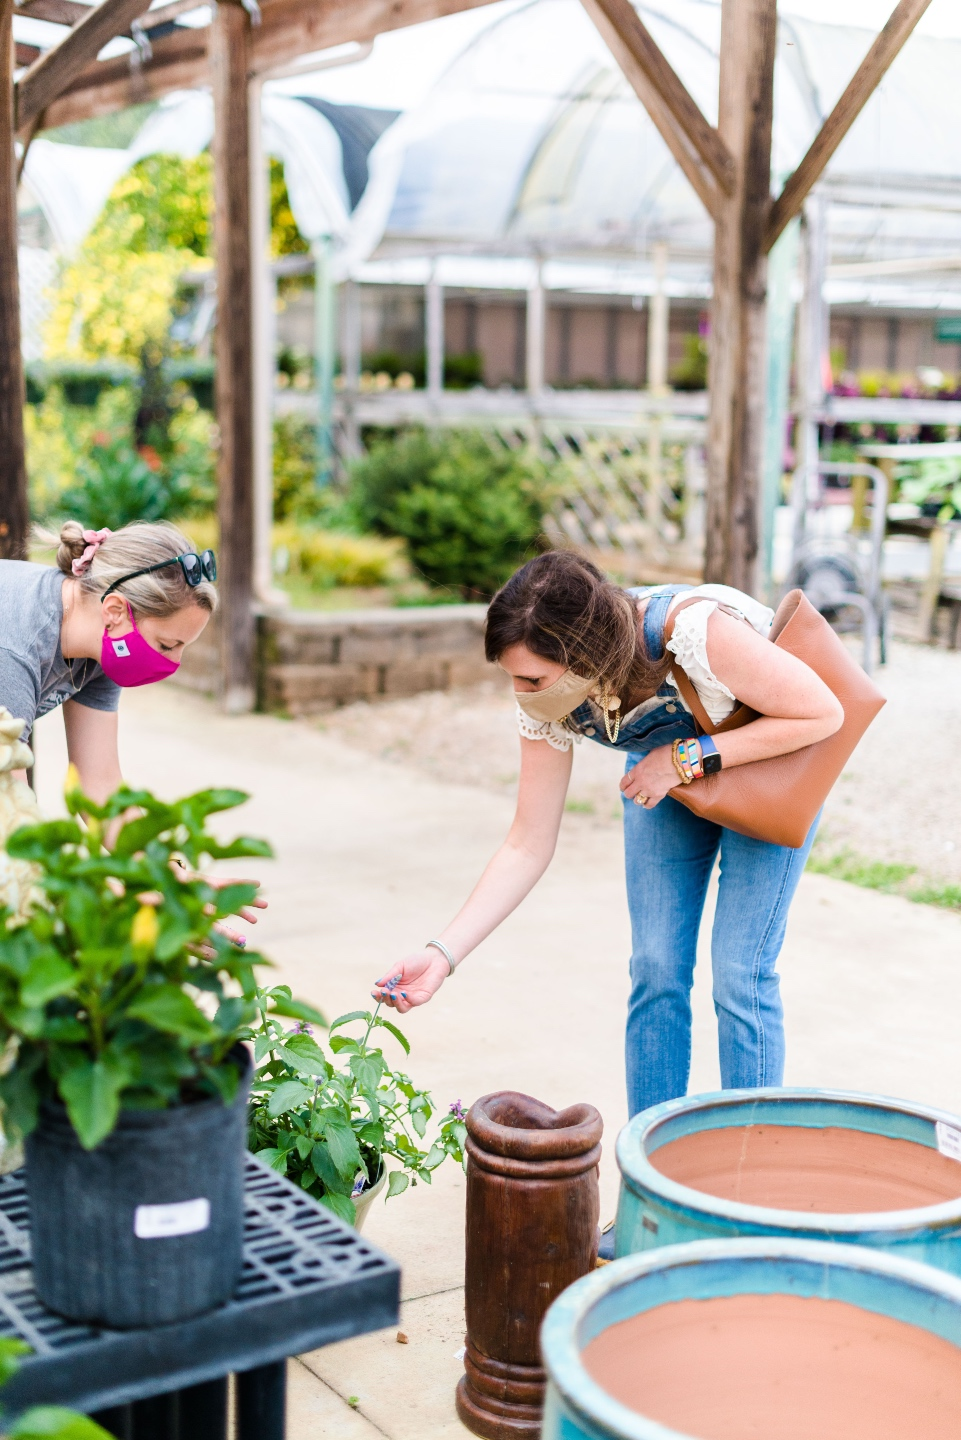 5 Spring Planting Tips with Fairview Garden Center - I'm Fixin' To - @imfixintoblog |Best Plants to Plant in Spring by popular NC lifestyle blog: image of two women looking at a plant at the Fairview Garden Center.